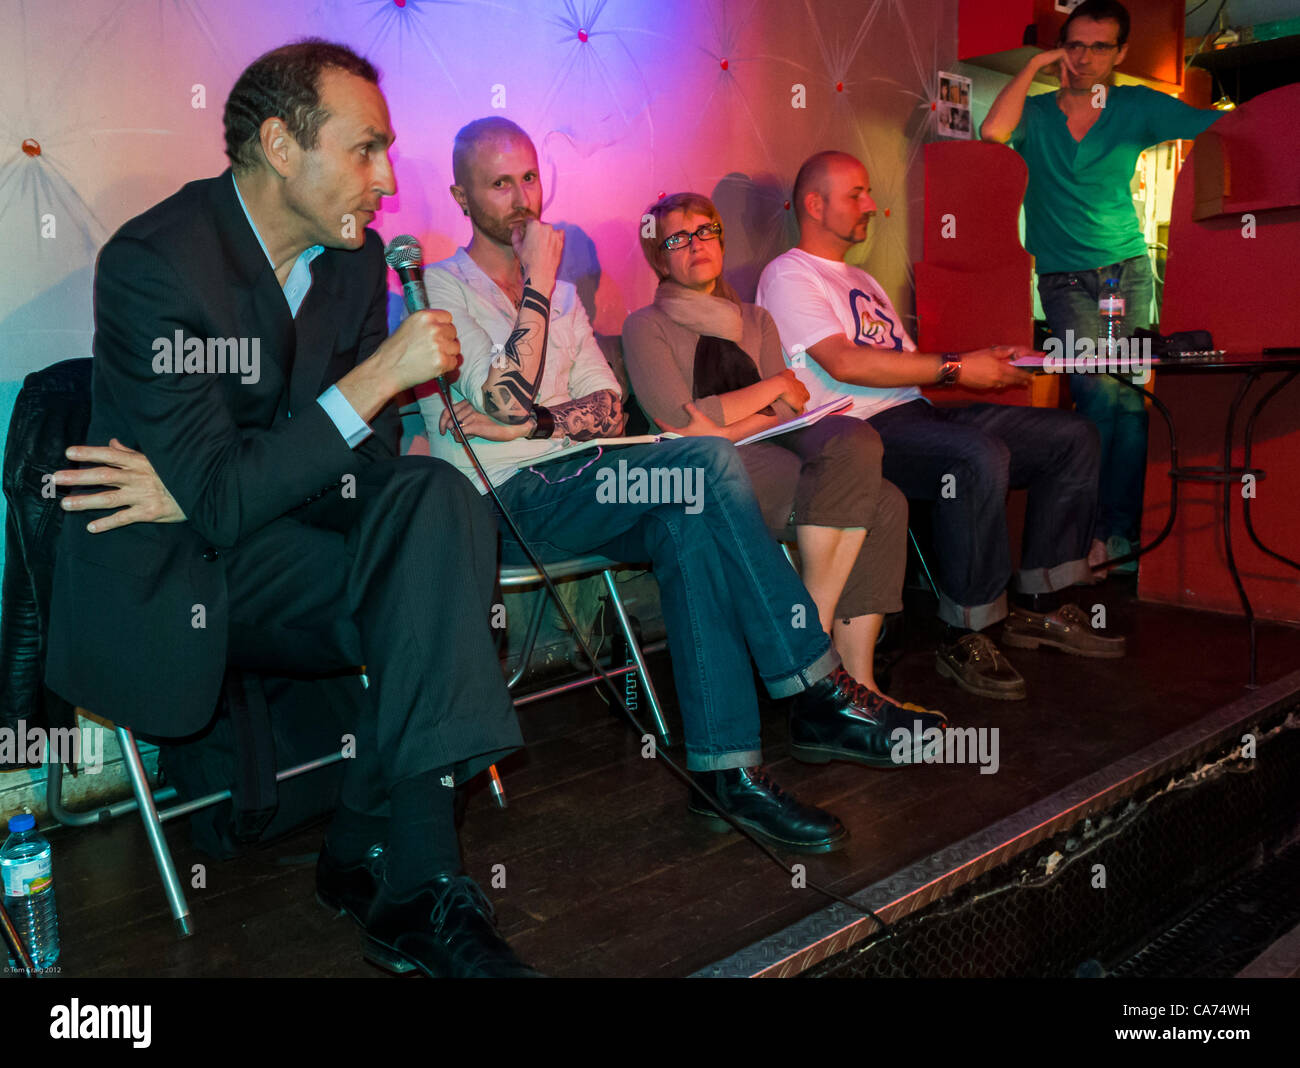 Paris, France, AIDS Crisis, Gay Men's Prevention Strategy Public Meeting (Jean Michel Molina, Doctor of IPERGAY - Stock Image